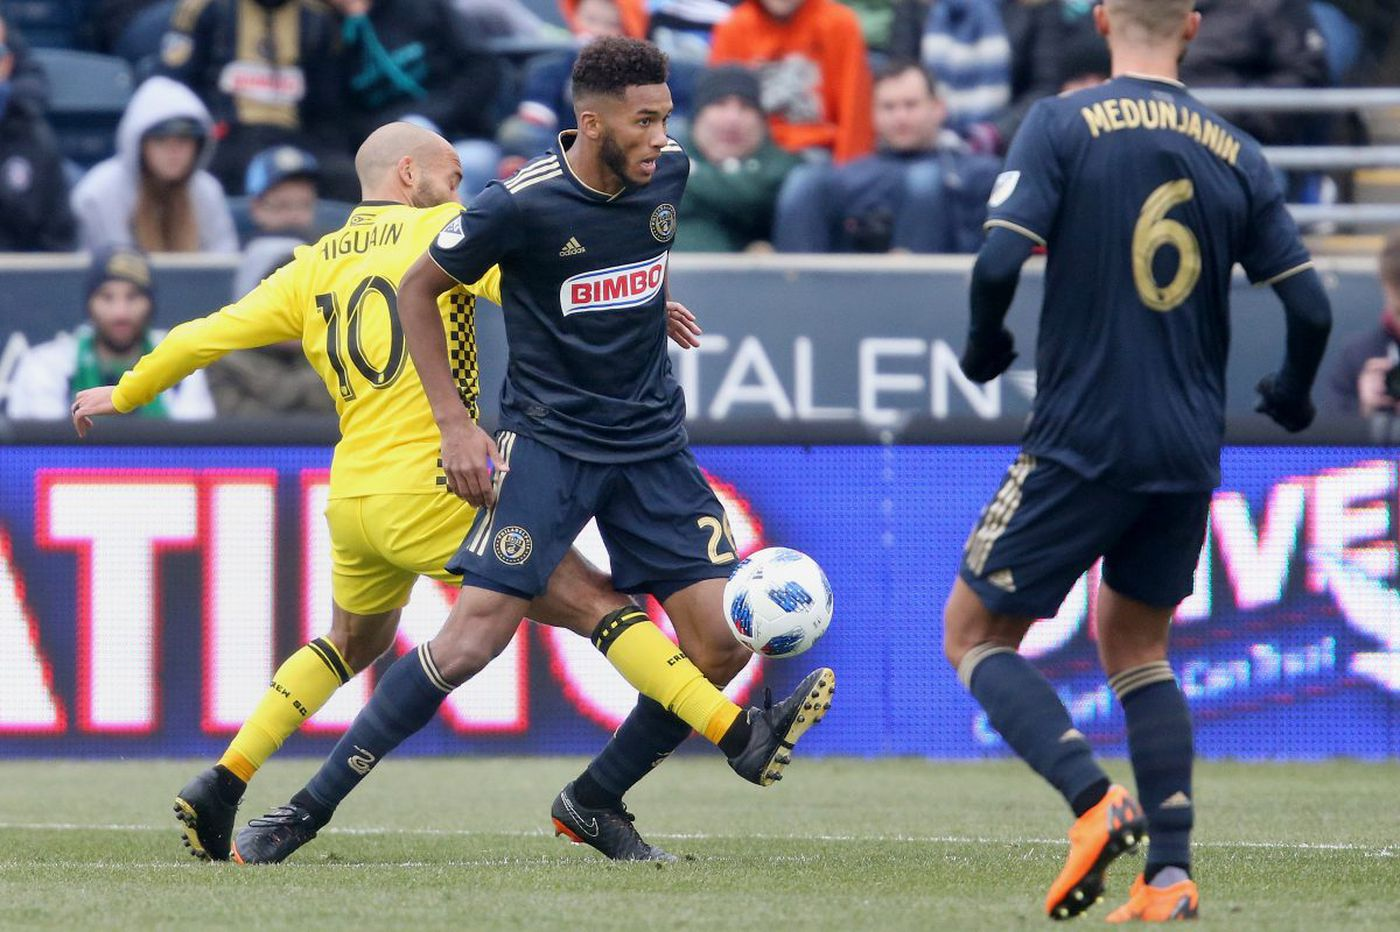 Union's Auston Trusty keeps improving as rookie season continues